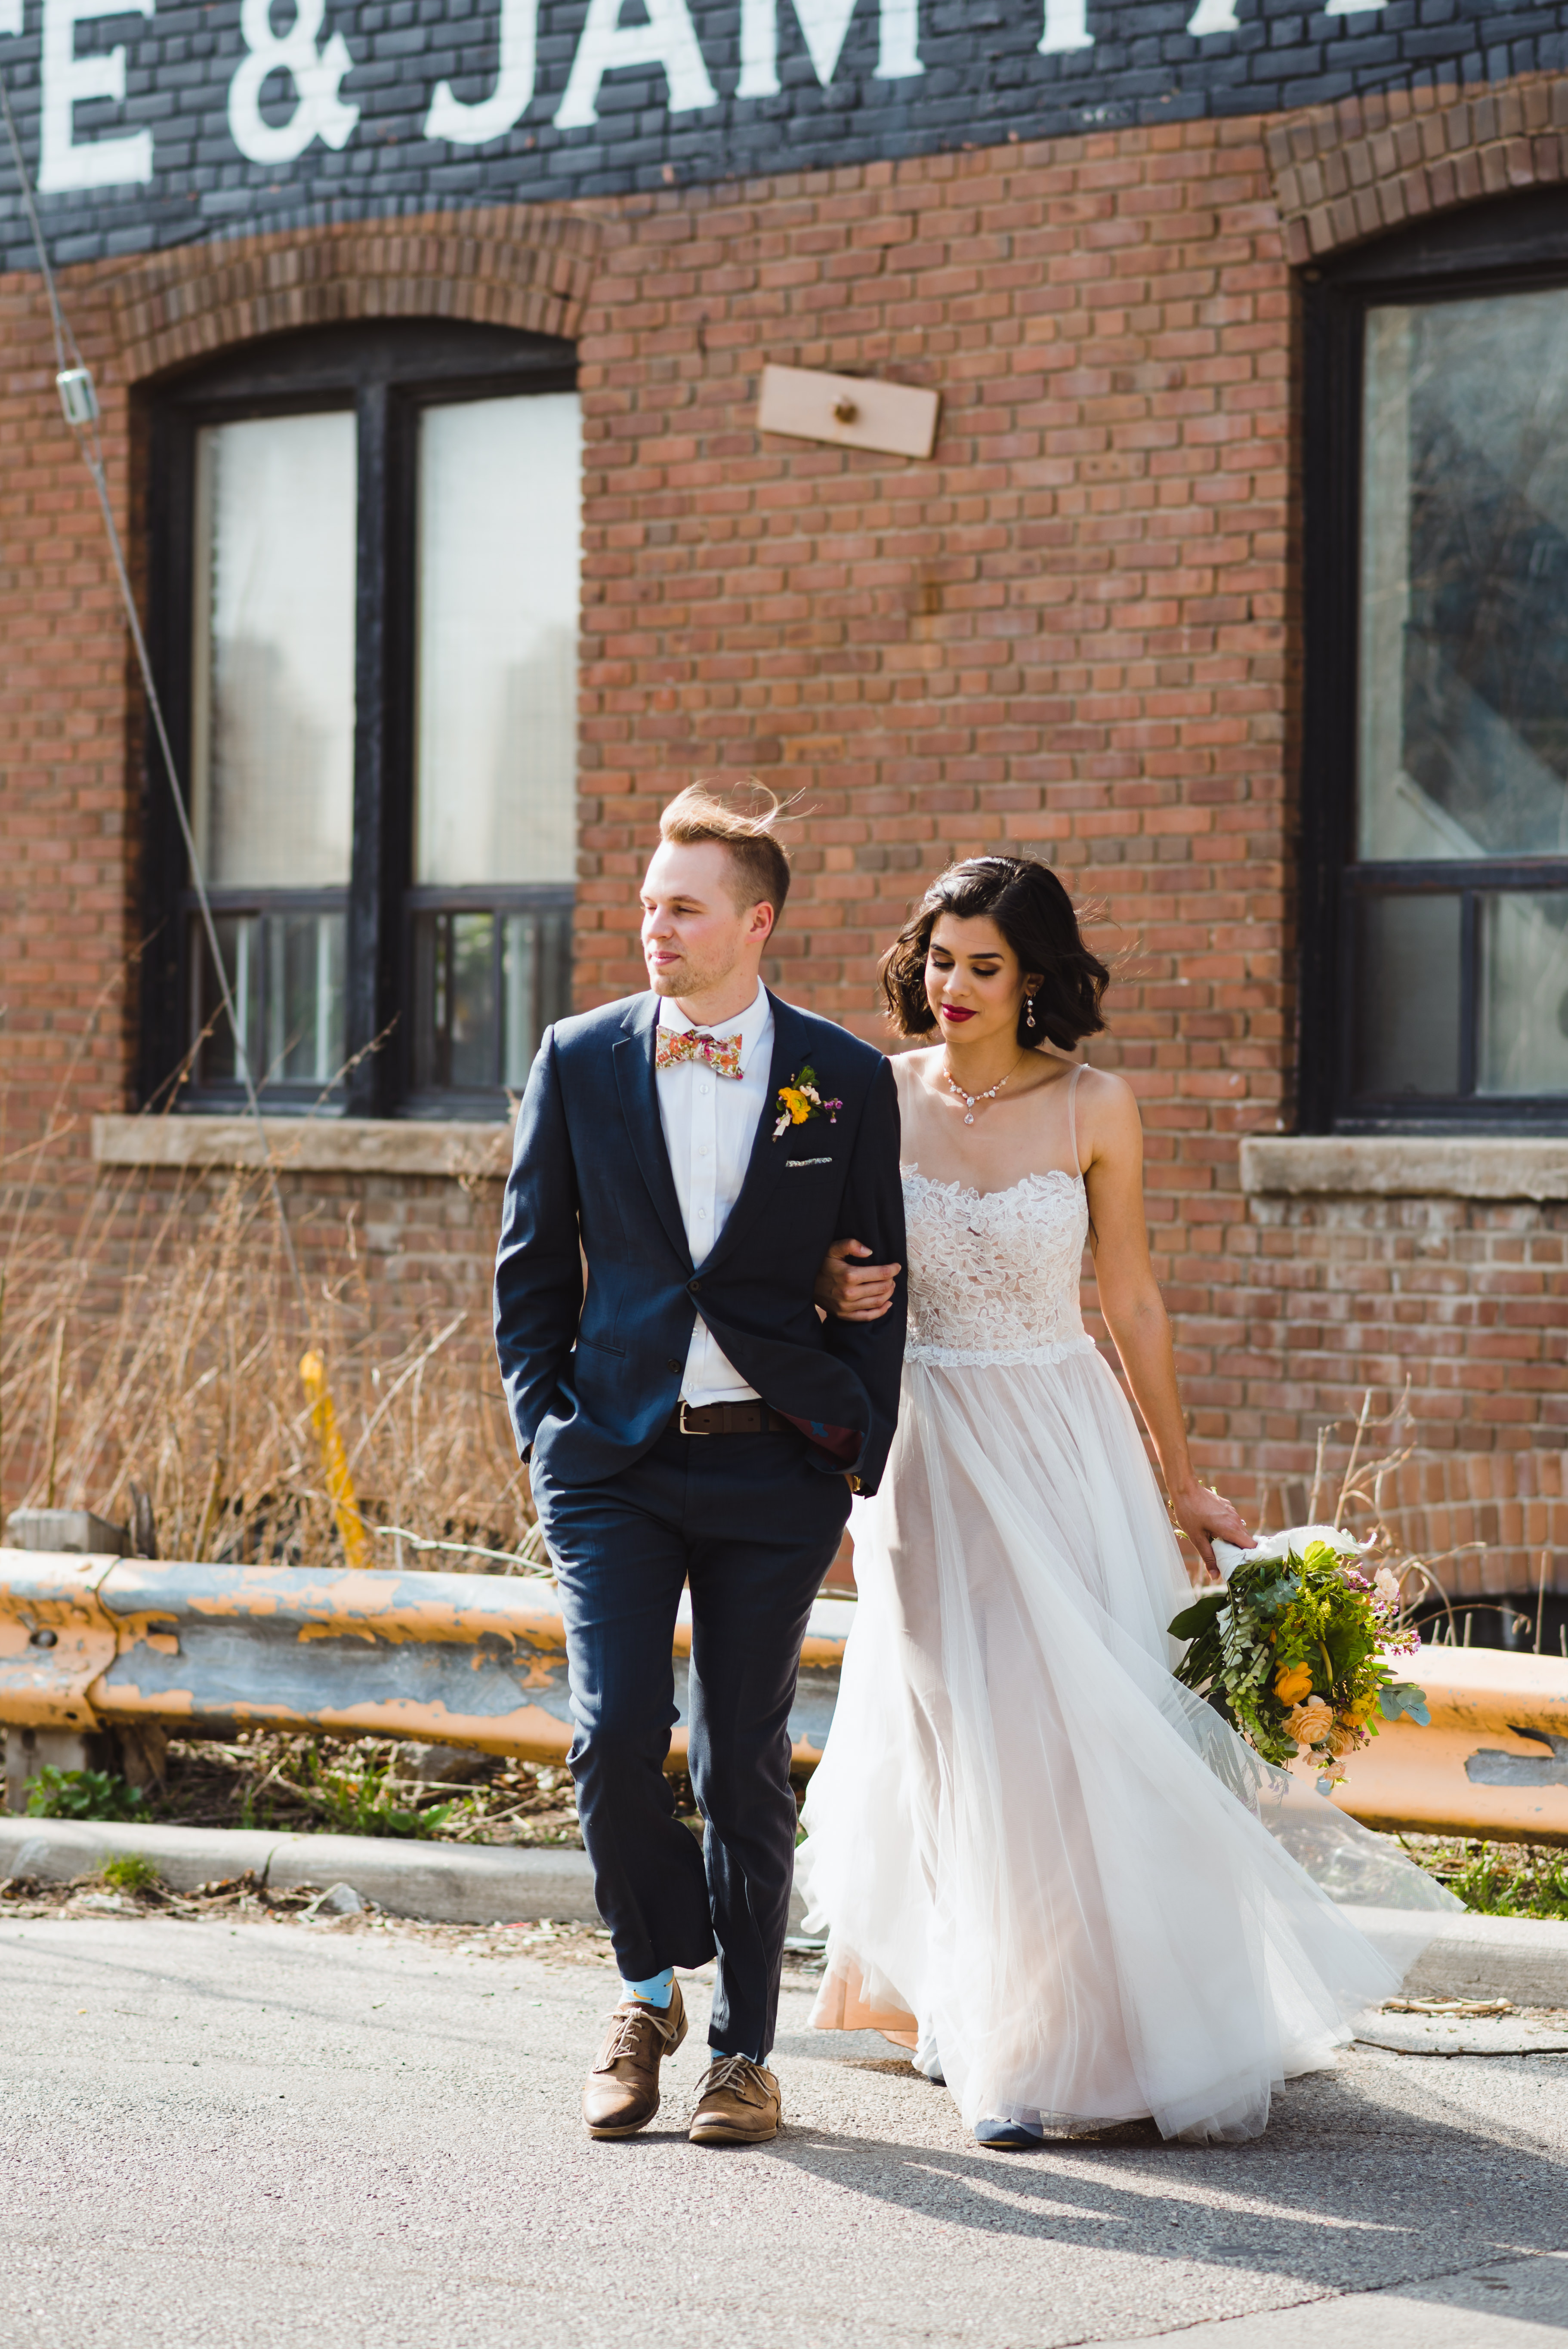 bride and groom linked arms outside the Jam Factory Toronto wedding photographer Gillian Foster